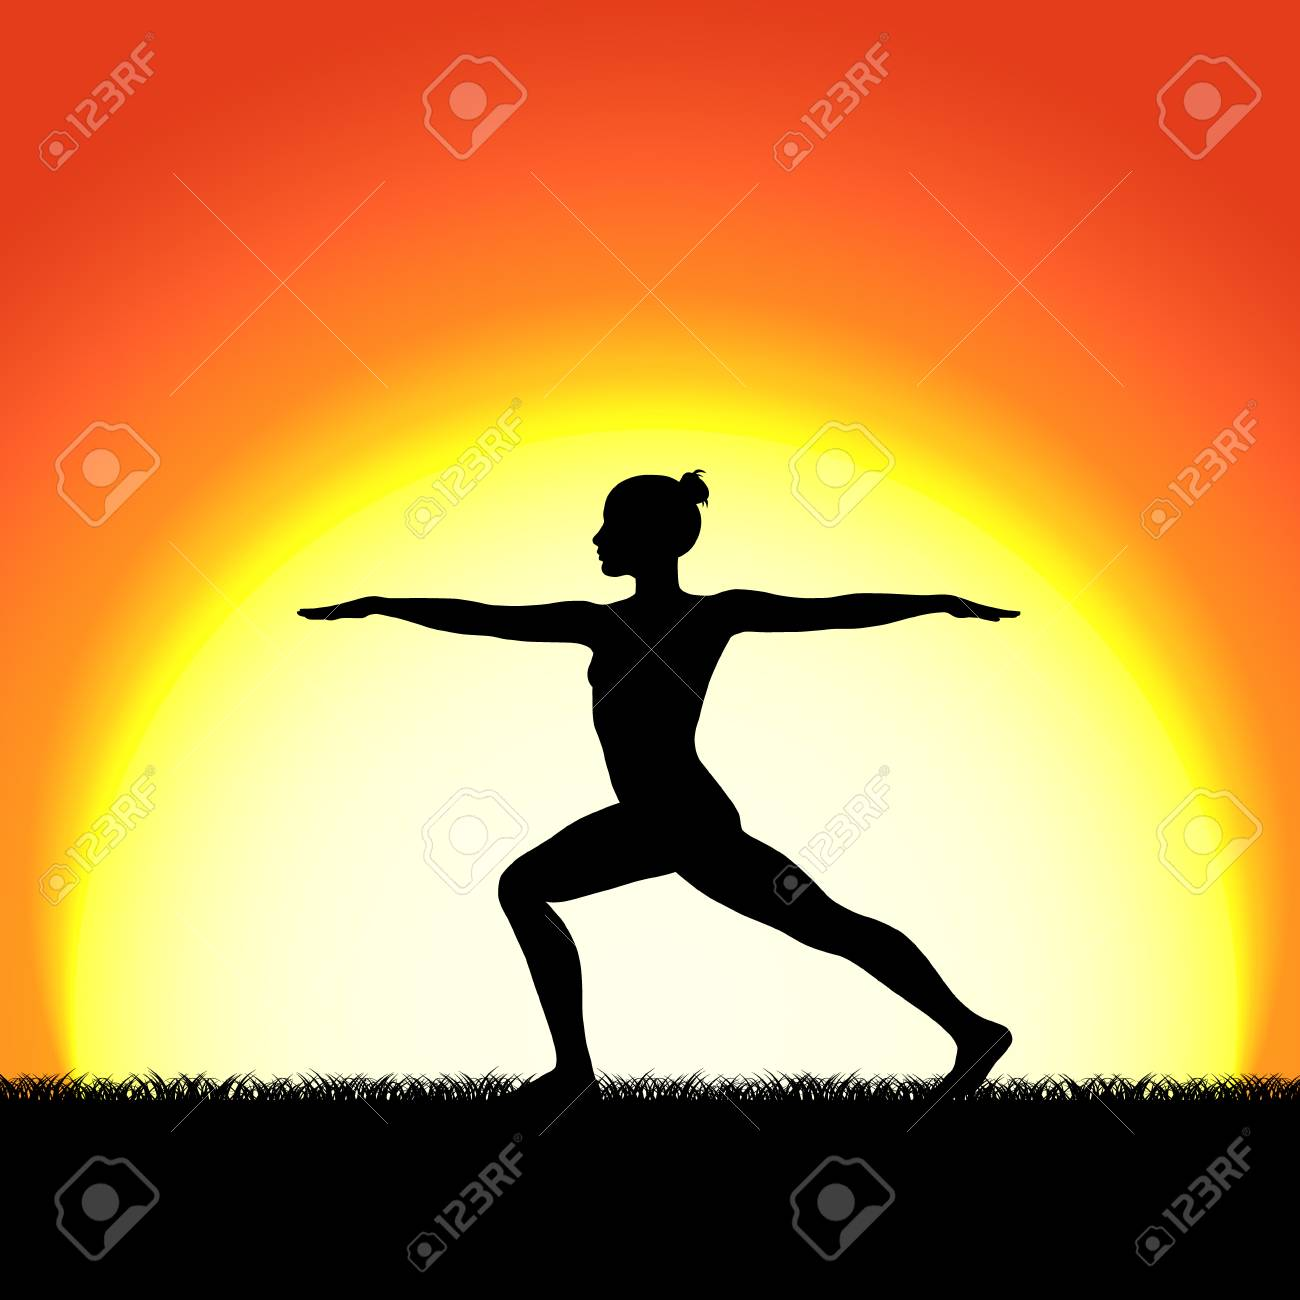 Yoga Pose In Black Silhouette On Sunset Background Royalty Free